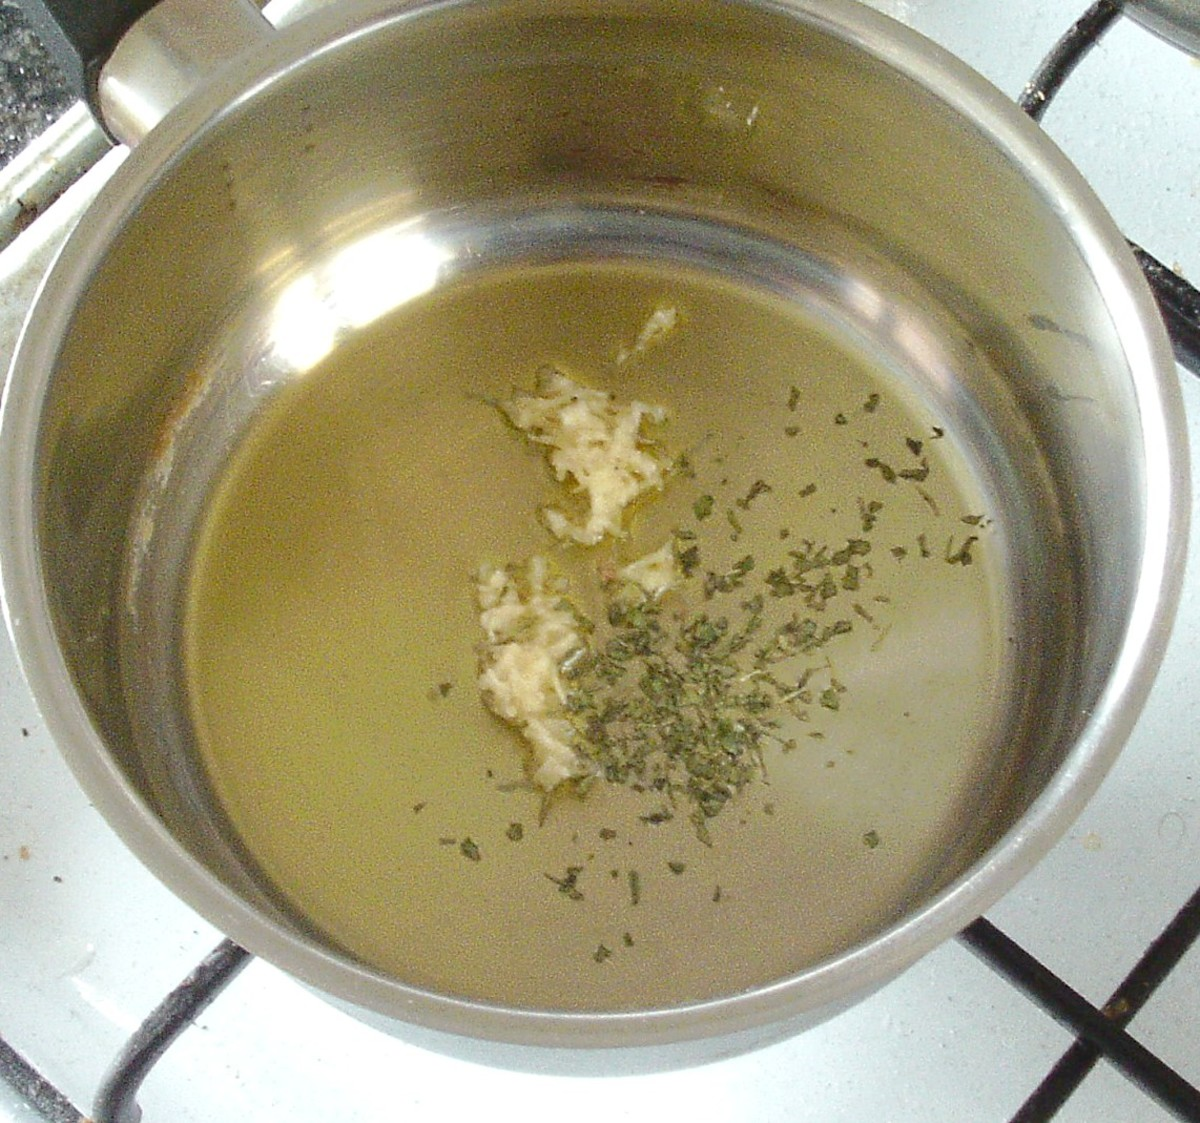 Garlic and herbs are added to oil in saucepan